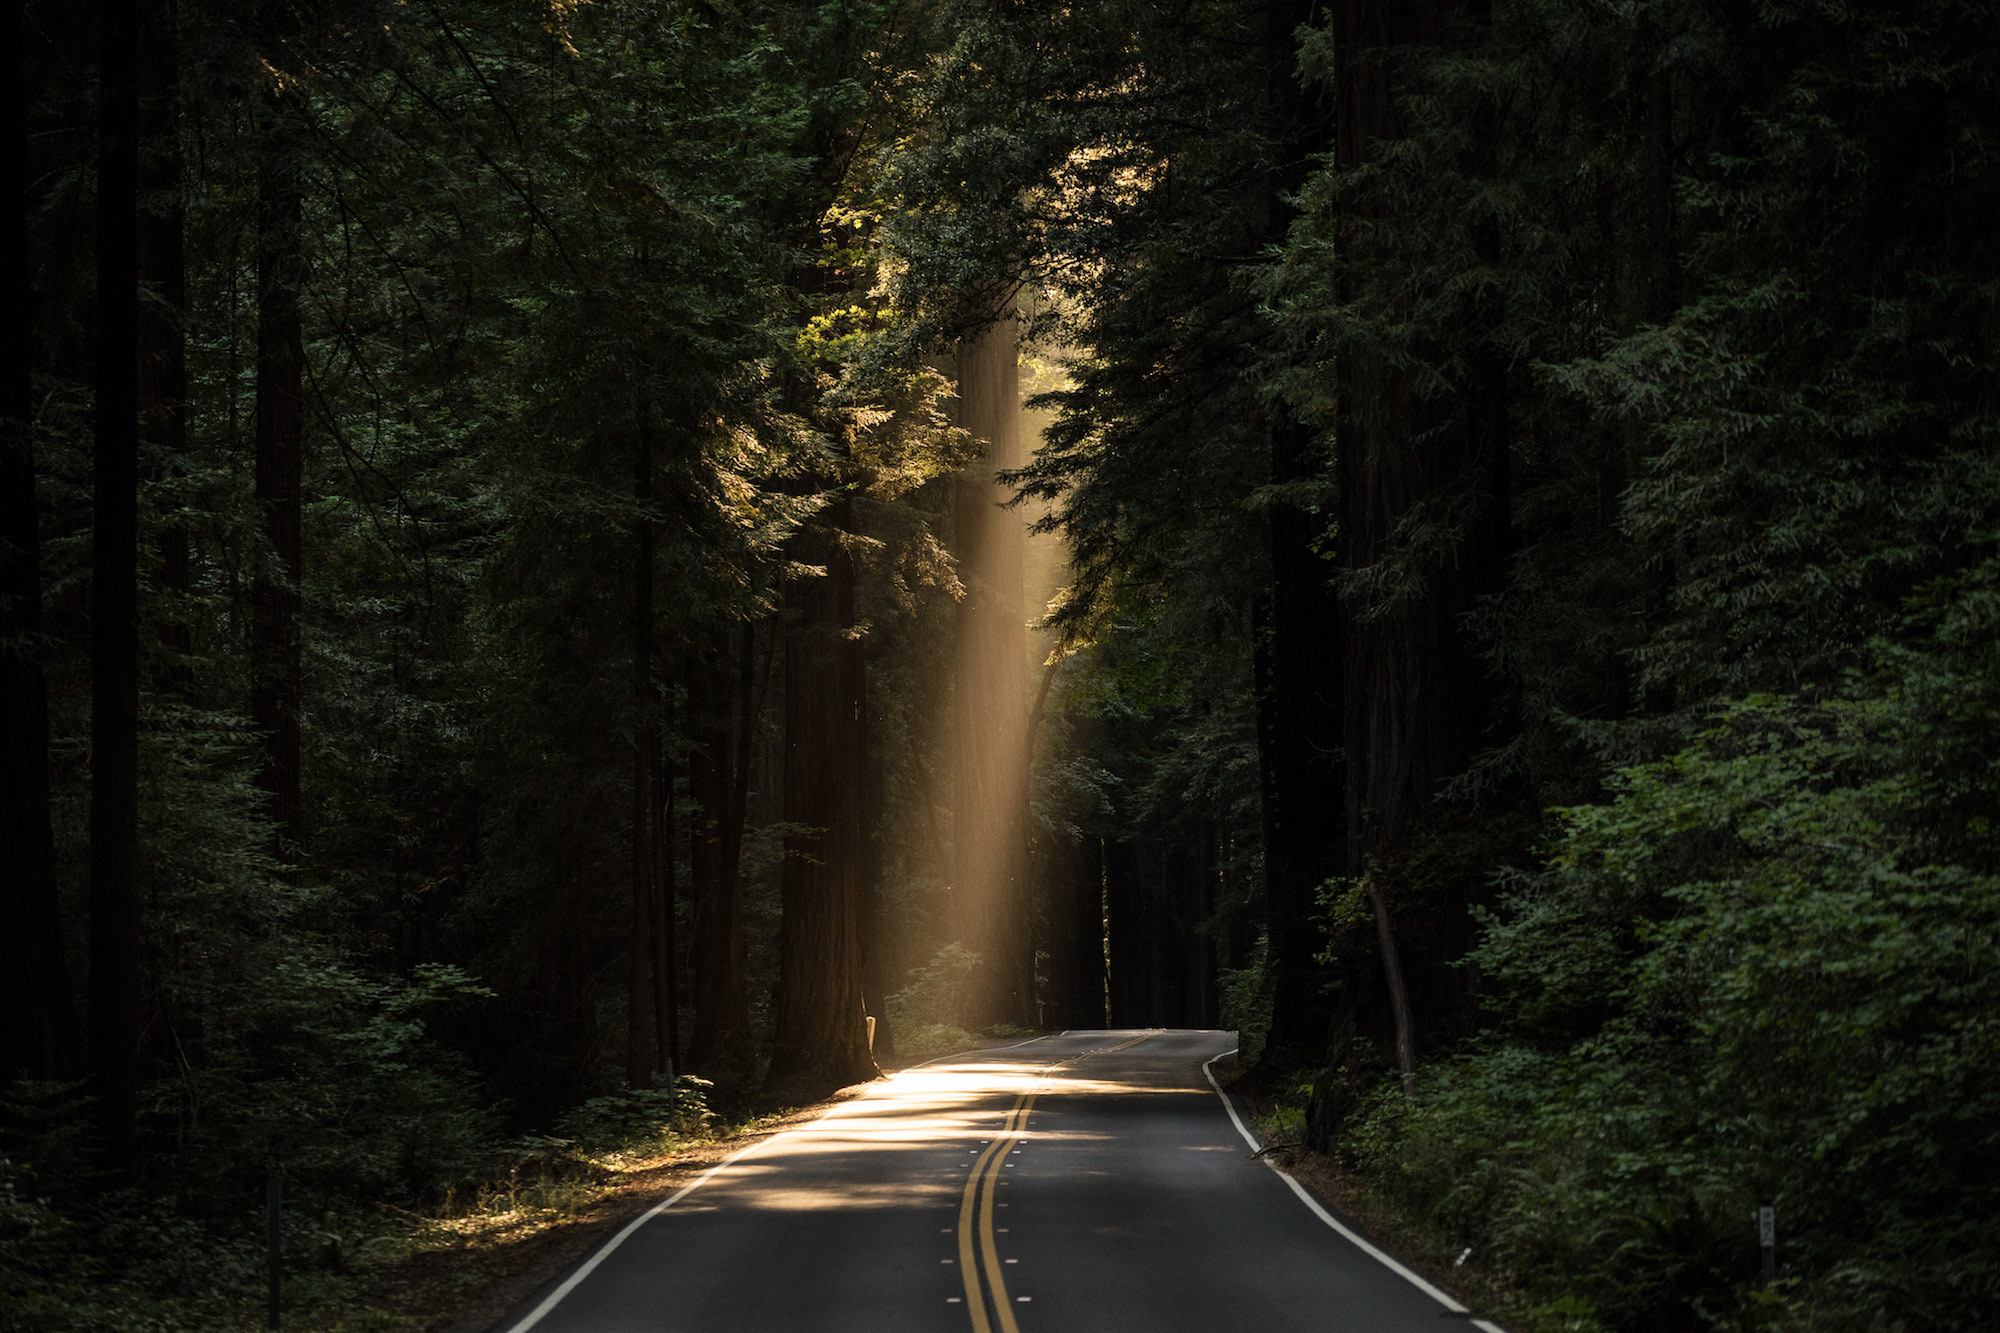 supercar vacation road in forest shining sun